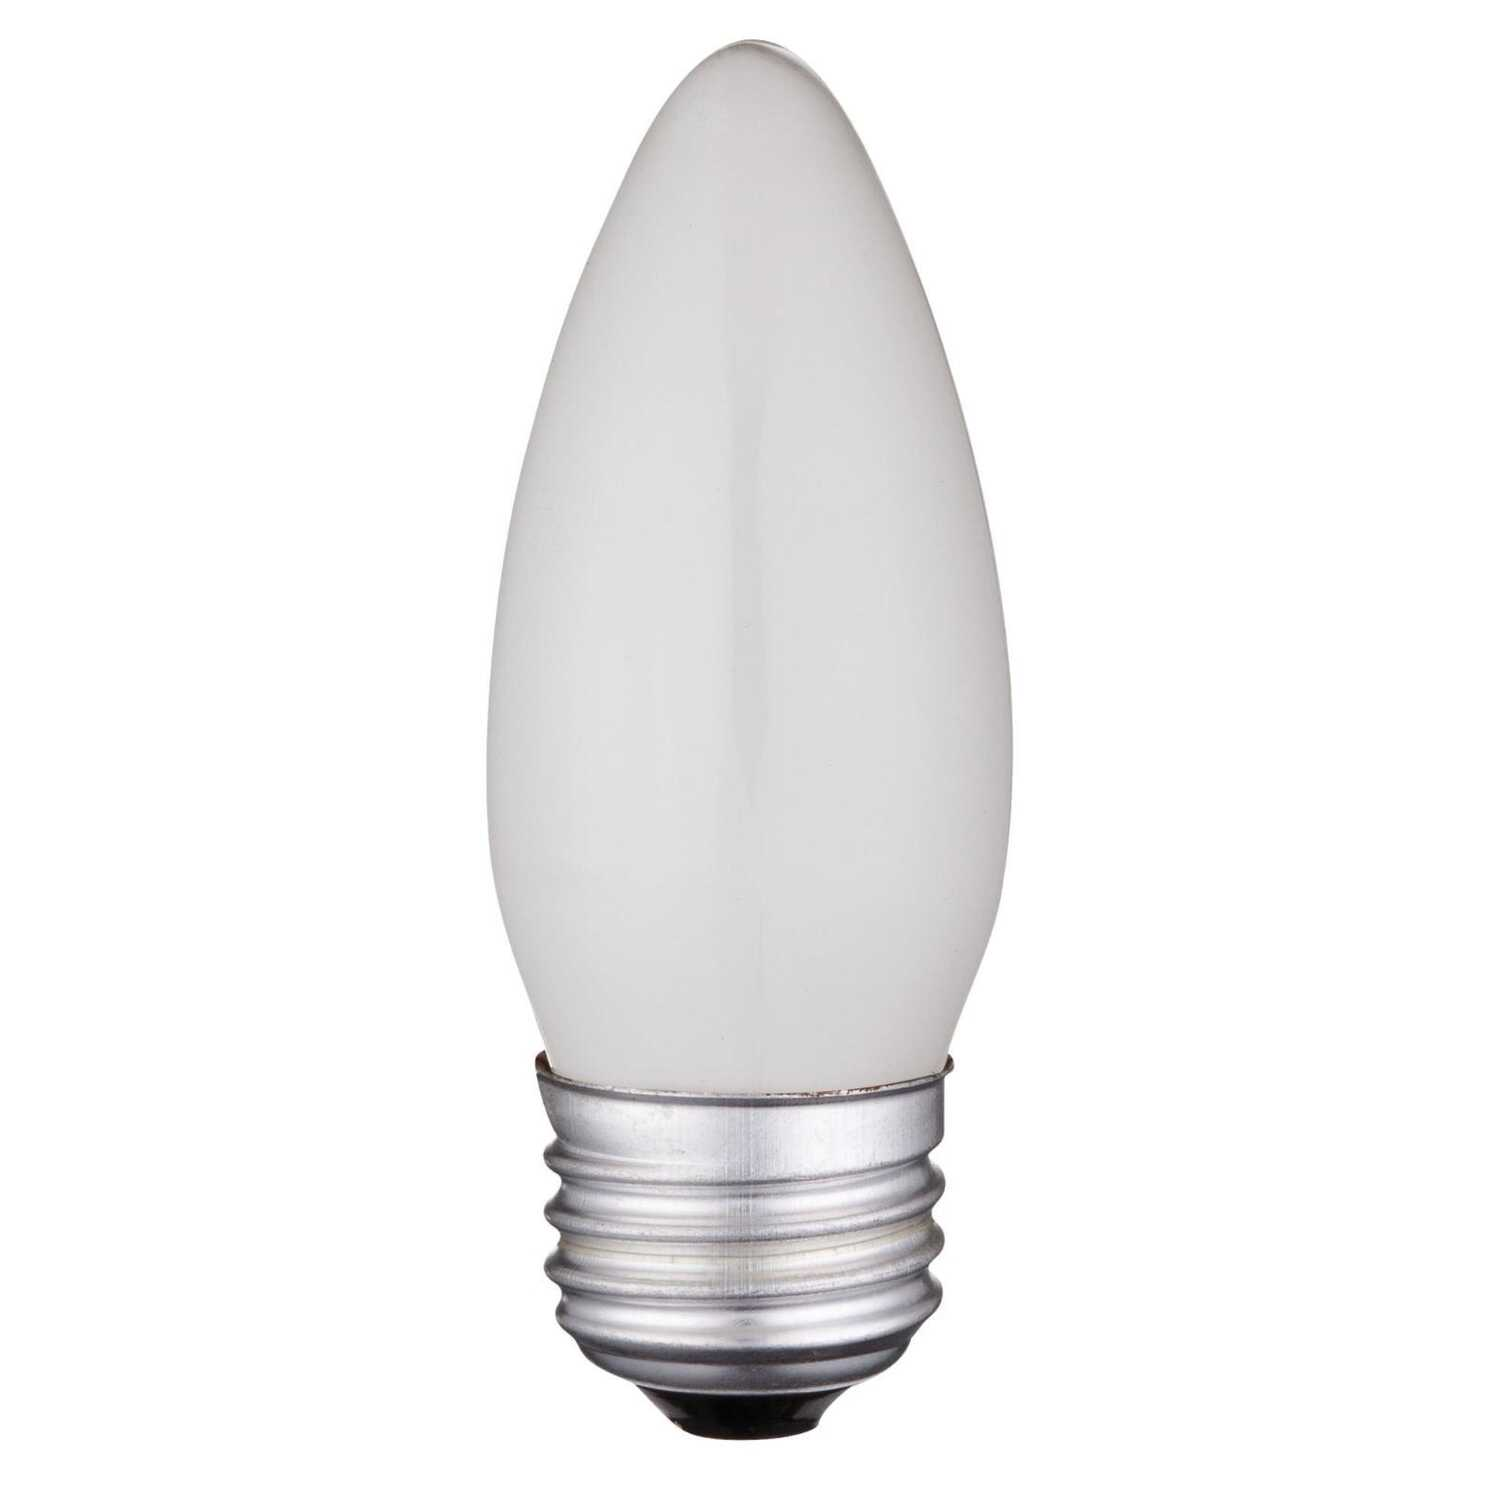 Westinghouse  40 watts B11  Incandescent Bulb  350 lumens Warm White  Decorative  2 pk